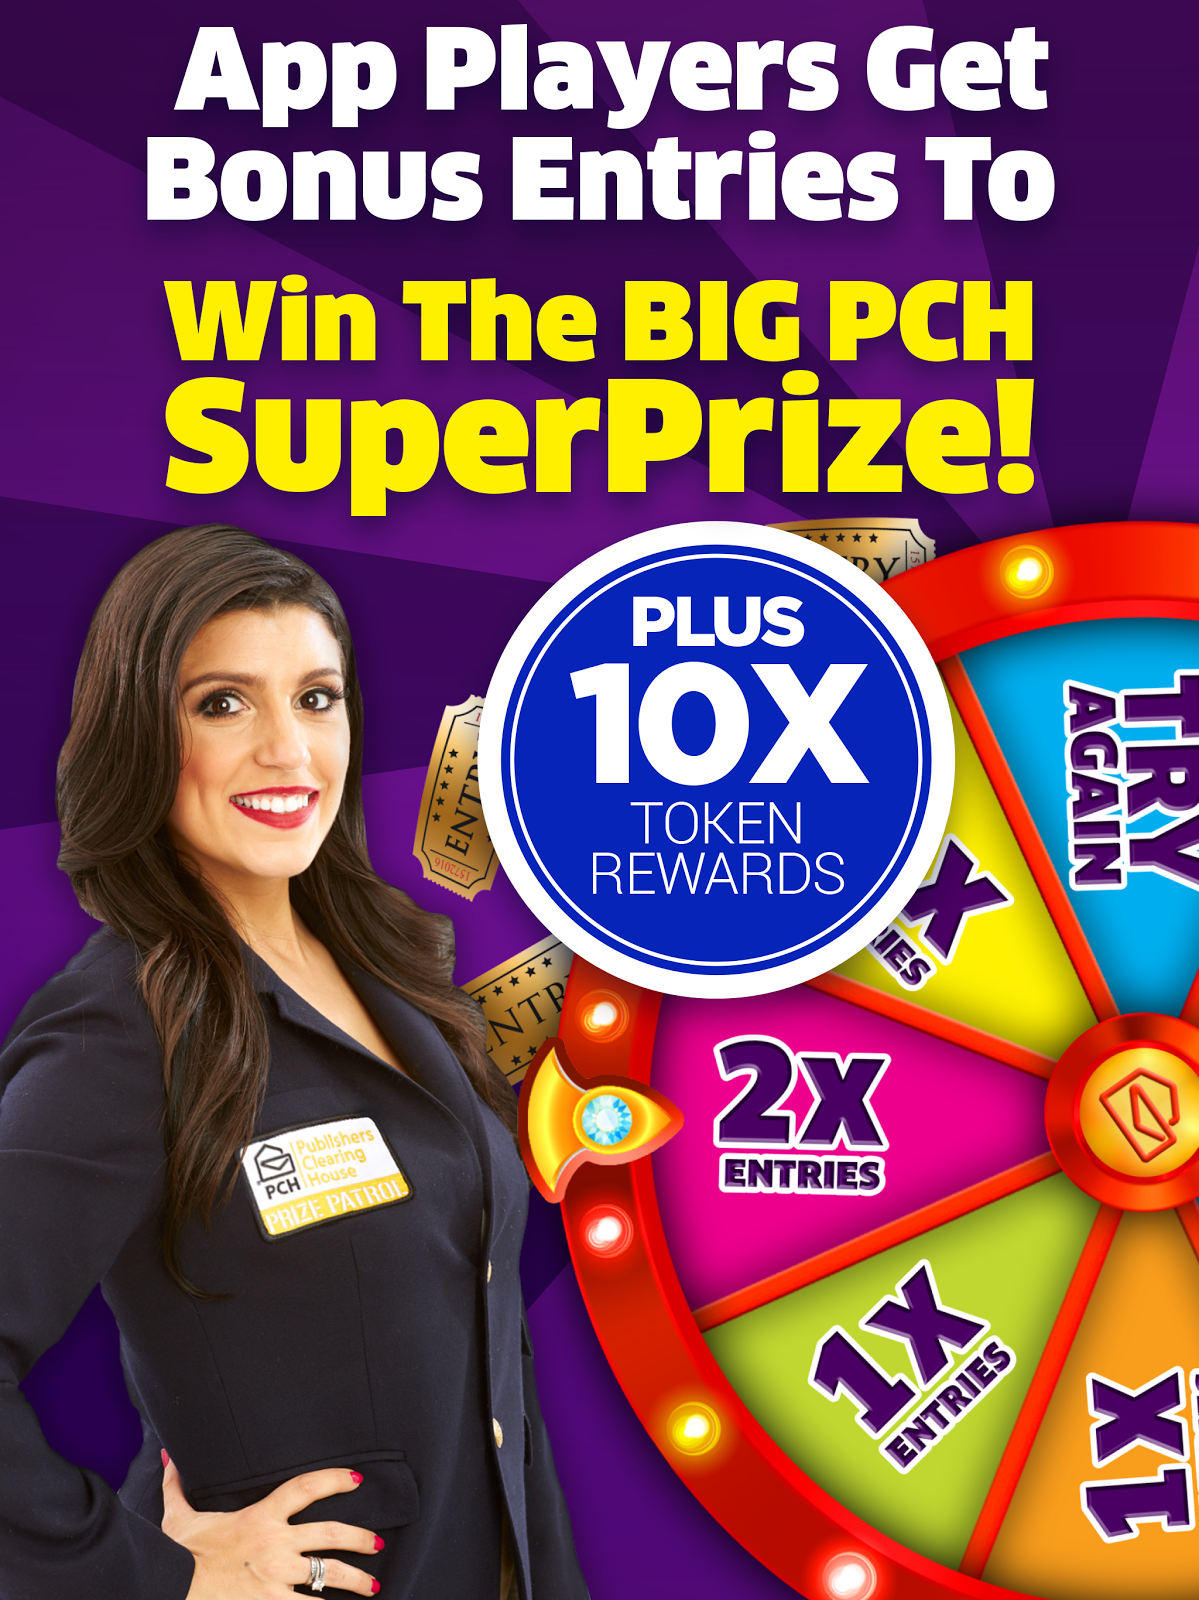 Screenshot Image Pch sweepstakes, Pch, Online sweepstakes